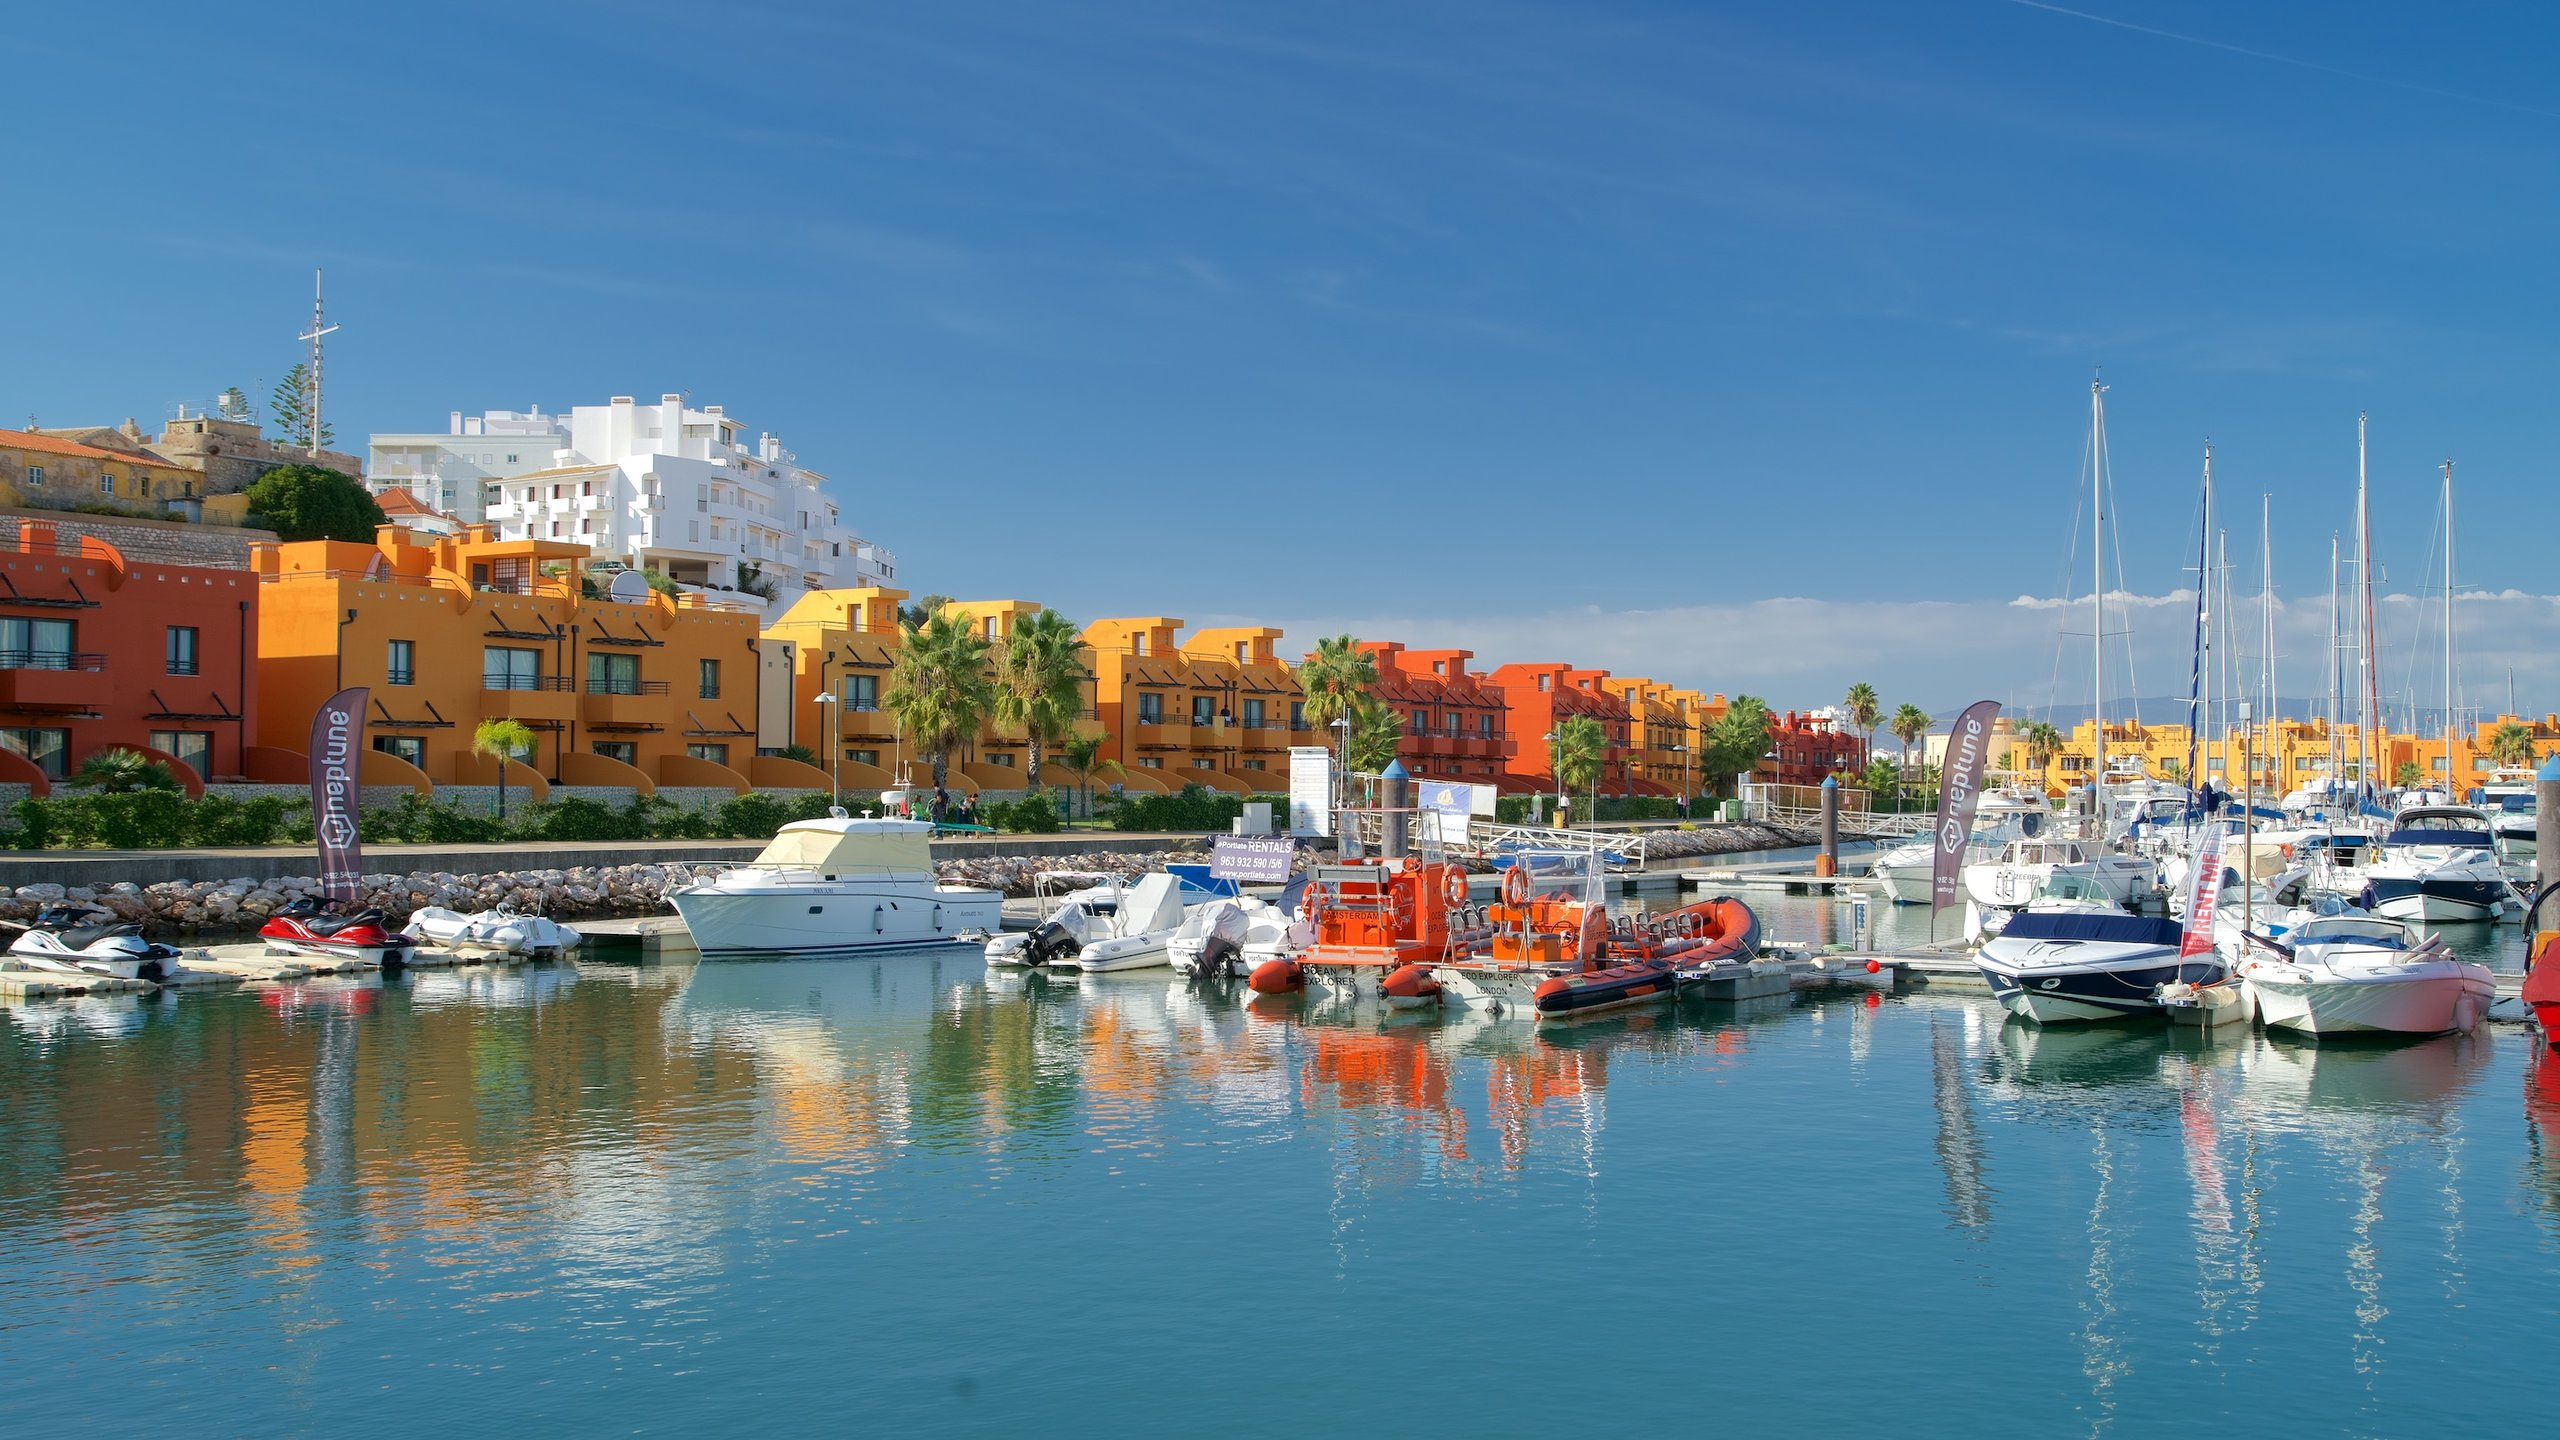 Acclaimed beaches and a pair of historic fortresses are part of this haven for super-sized yachts. Its orange and red buildings contain shops, bars and restaurants.